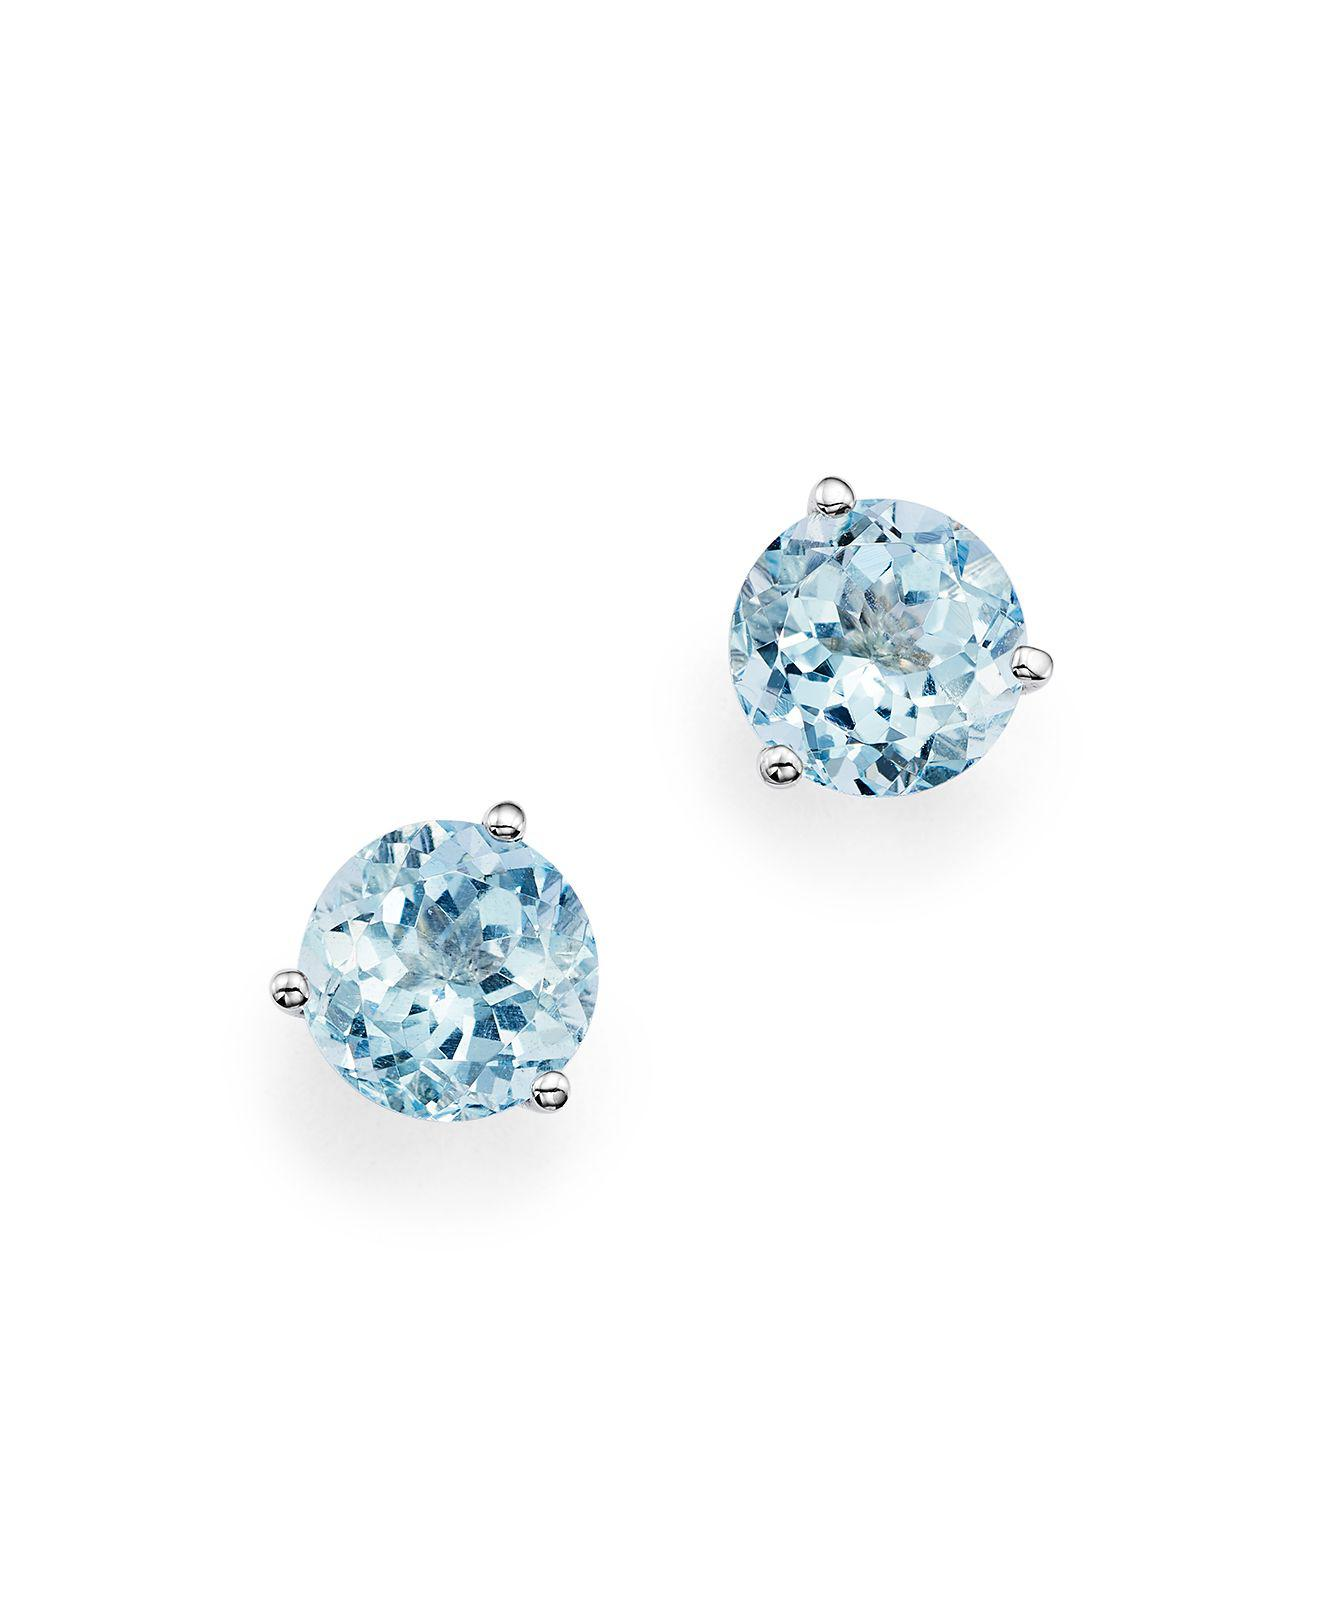 normal earrings jewelry neuwirth irene product aquamarine lyst blue marine in aqua stud ylwgold gallery